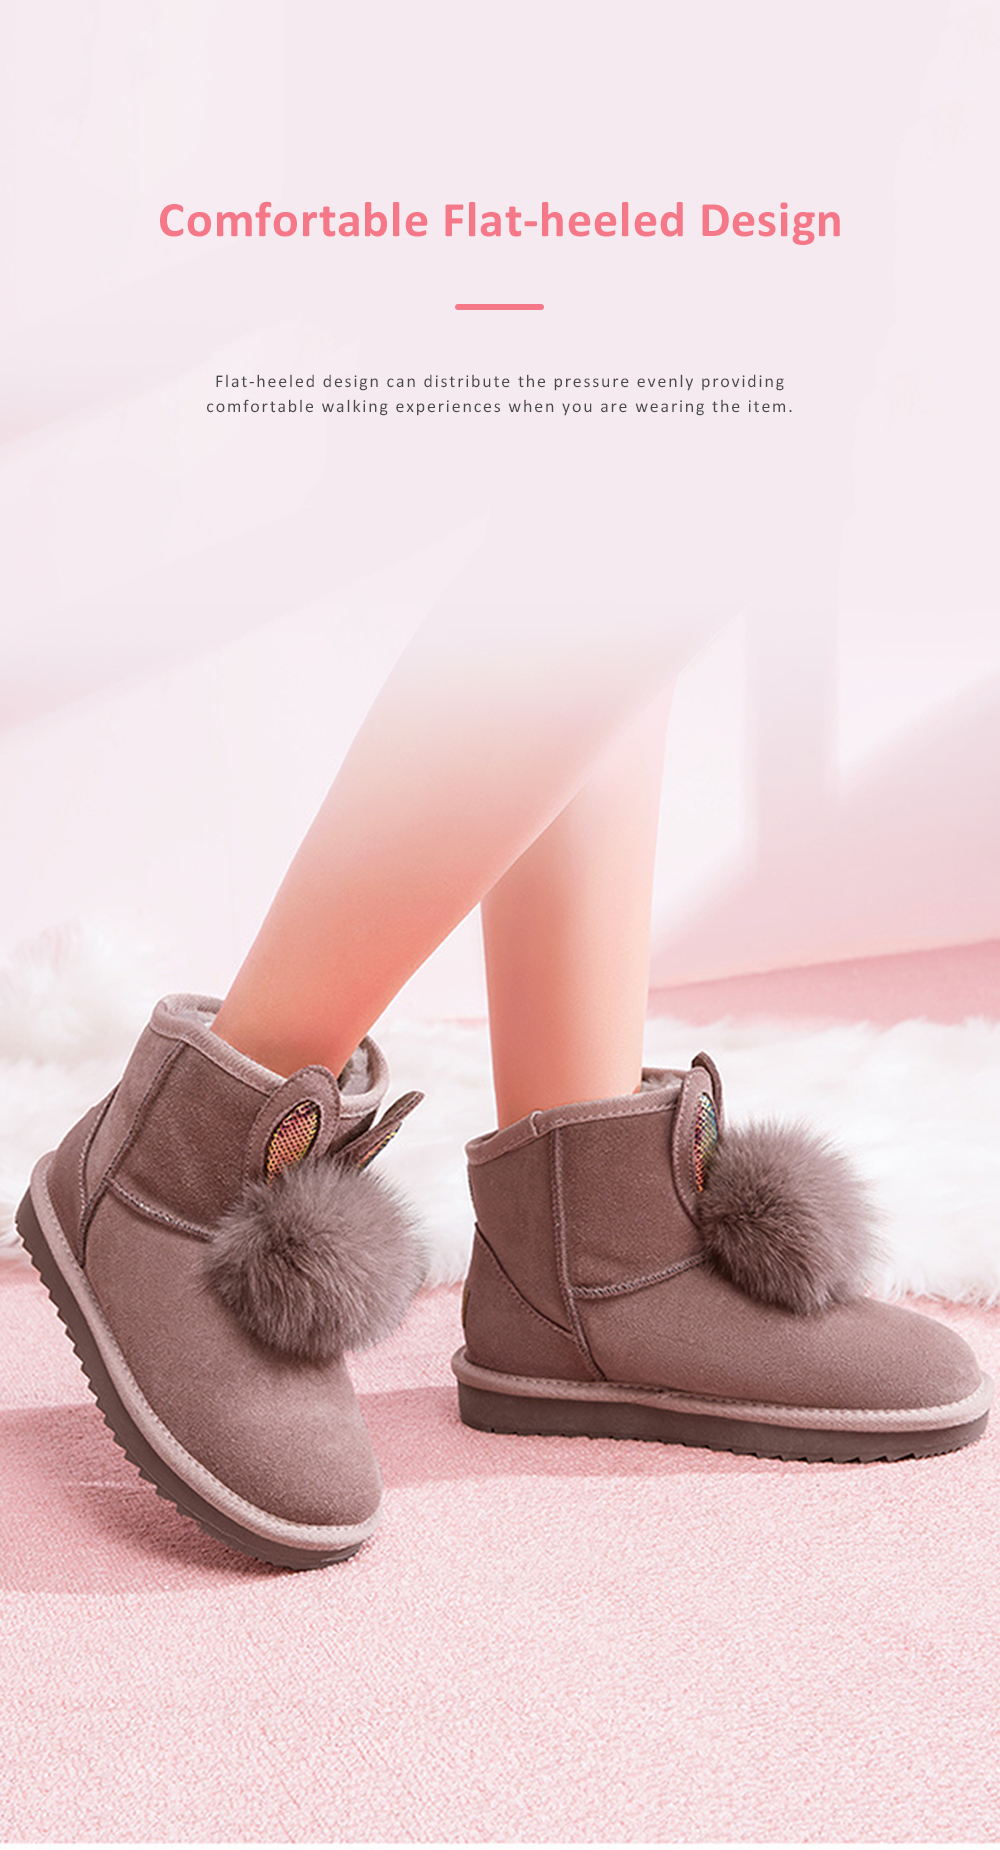 Warm Winter Autumn Cute Fluffy Rabbit Ears Model Decorative Anti-skid Girl Snow Boots with Fuzzy Ball Decoration 4